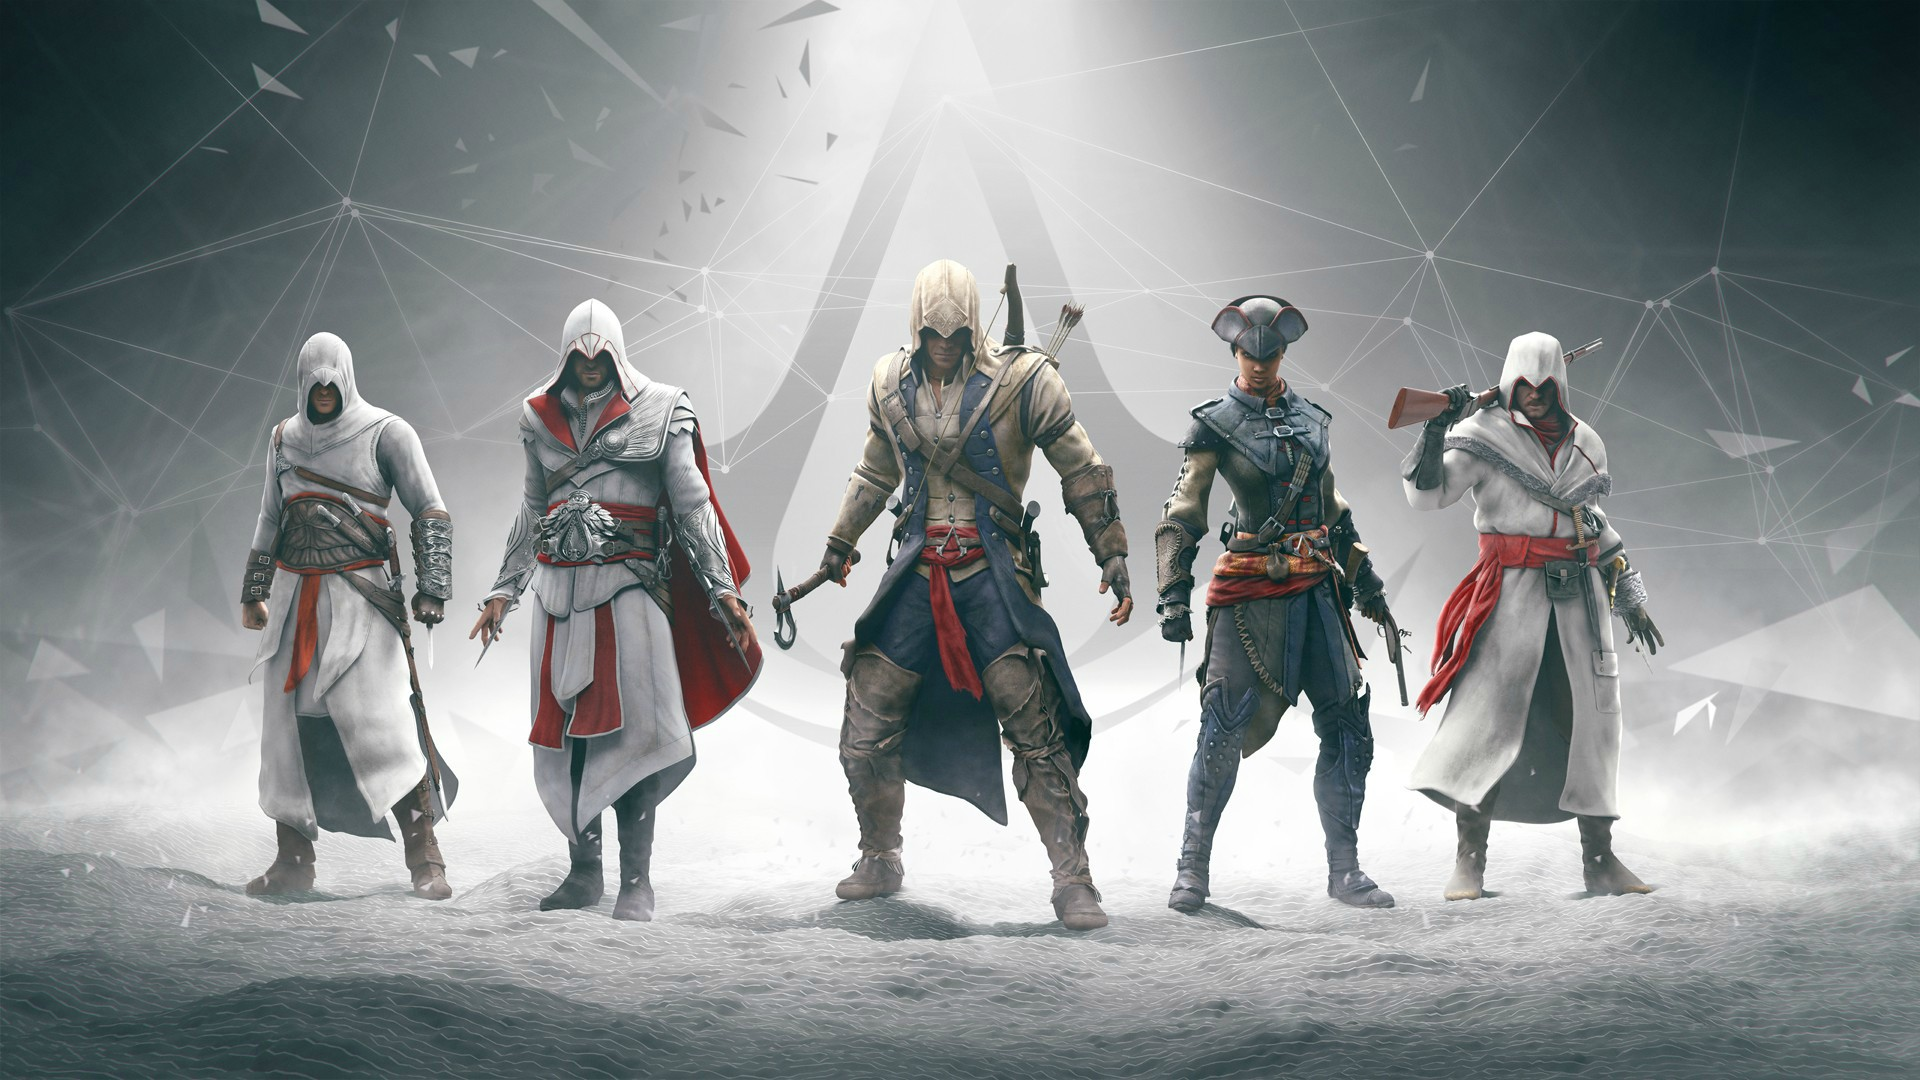 Where do you think the next Assassin's Creed game will be set?